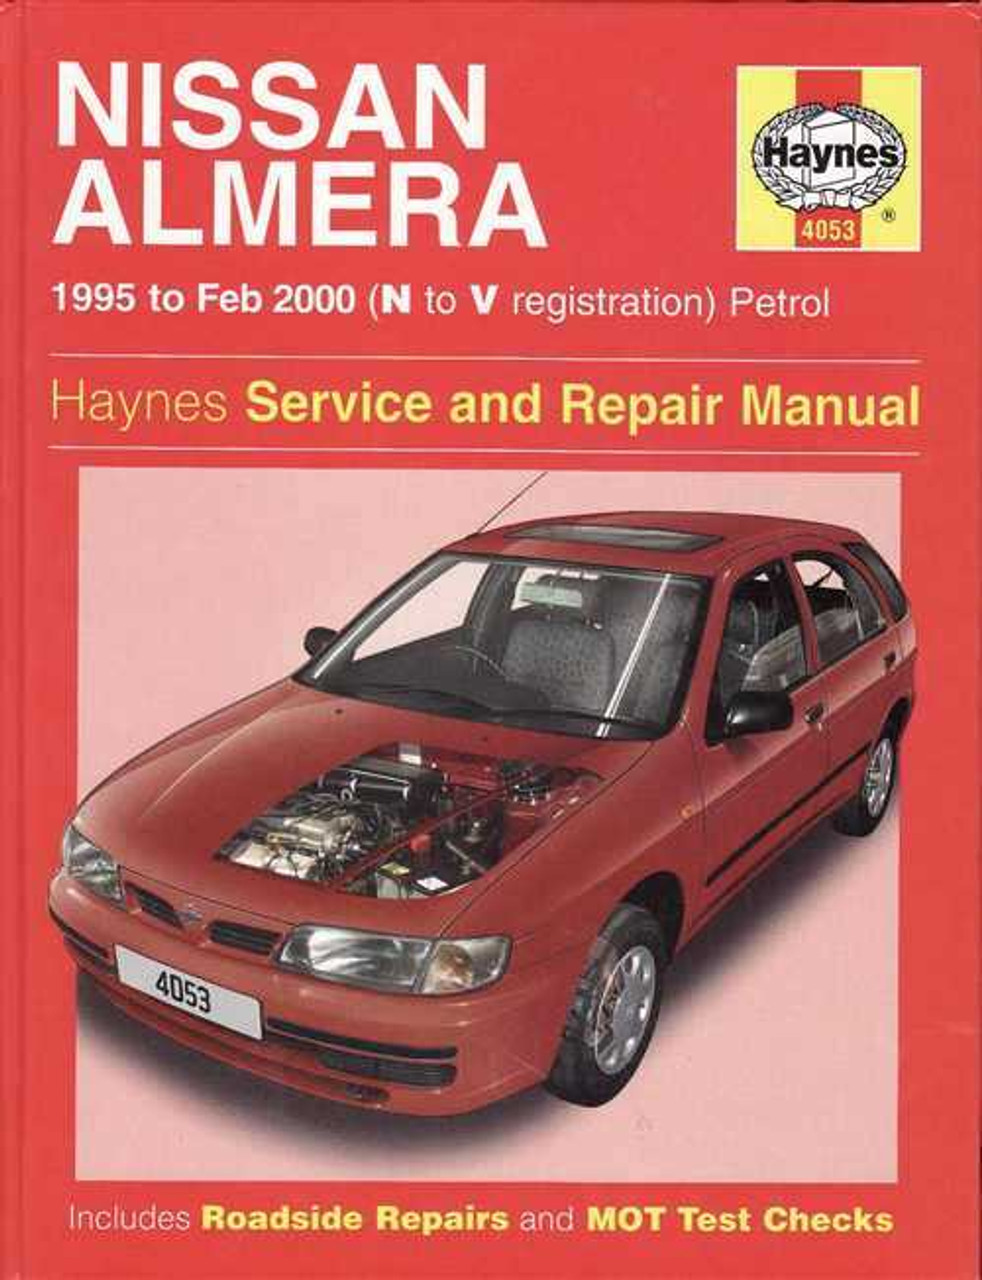 nissan almera pulsar n15 1995 2000 workshop manual rh automotobookshop com au nissan almera 2000 owners manual 2017 Nissan Sentra